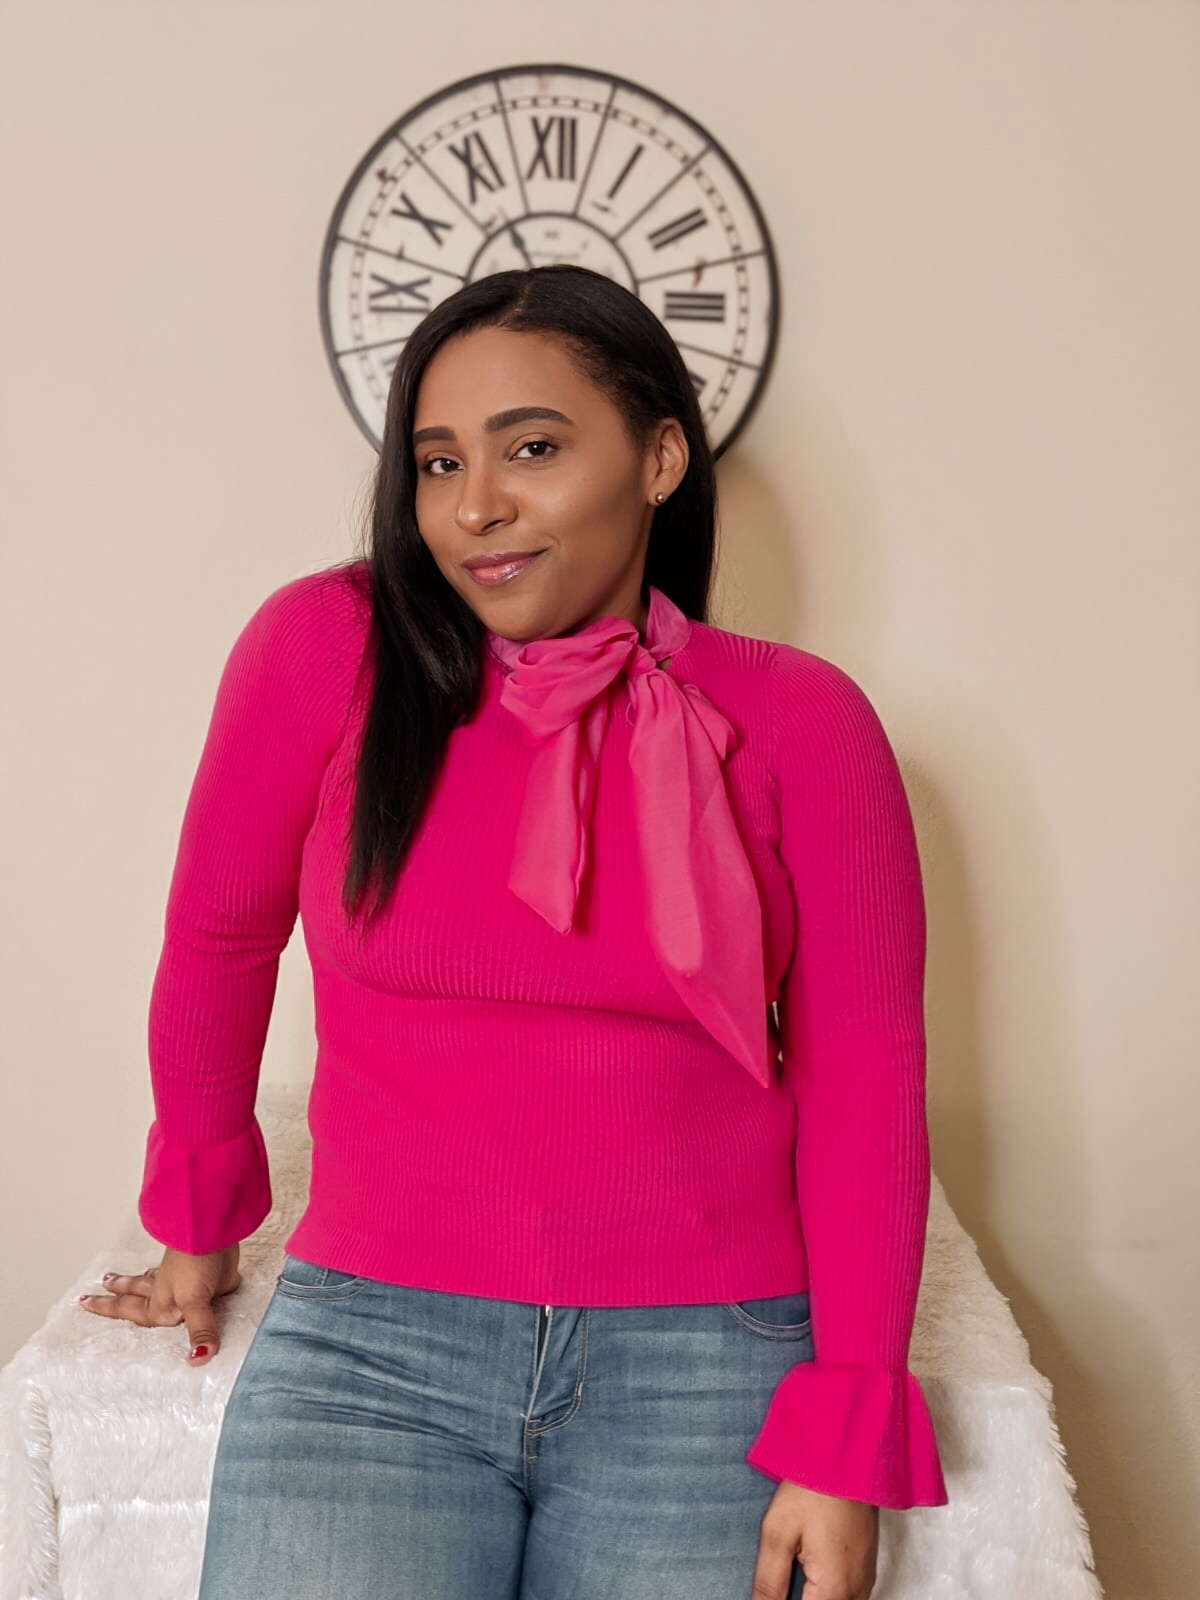 femme luxe, luxe gal, spring tops, fashion tops, pink bow tops, spring outfit ideas, pattys kloset.